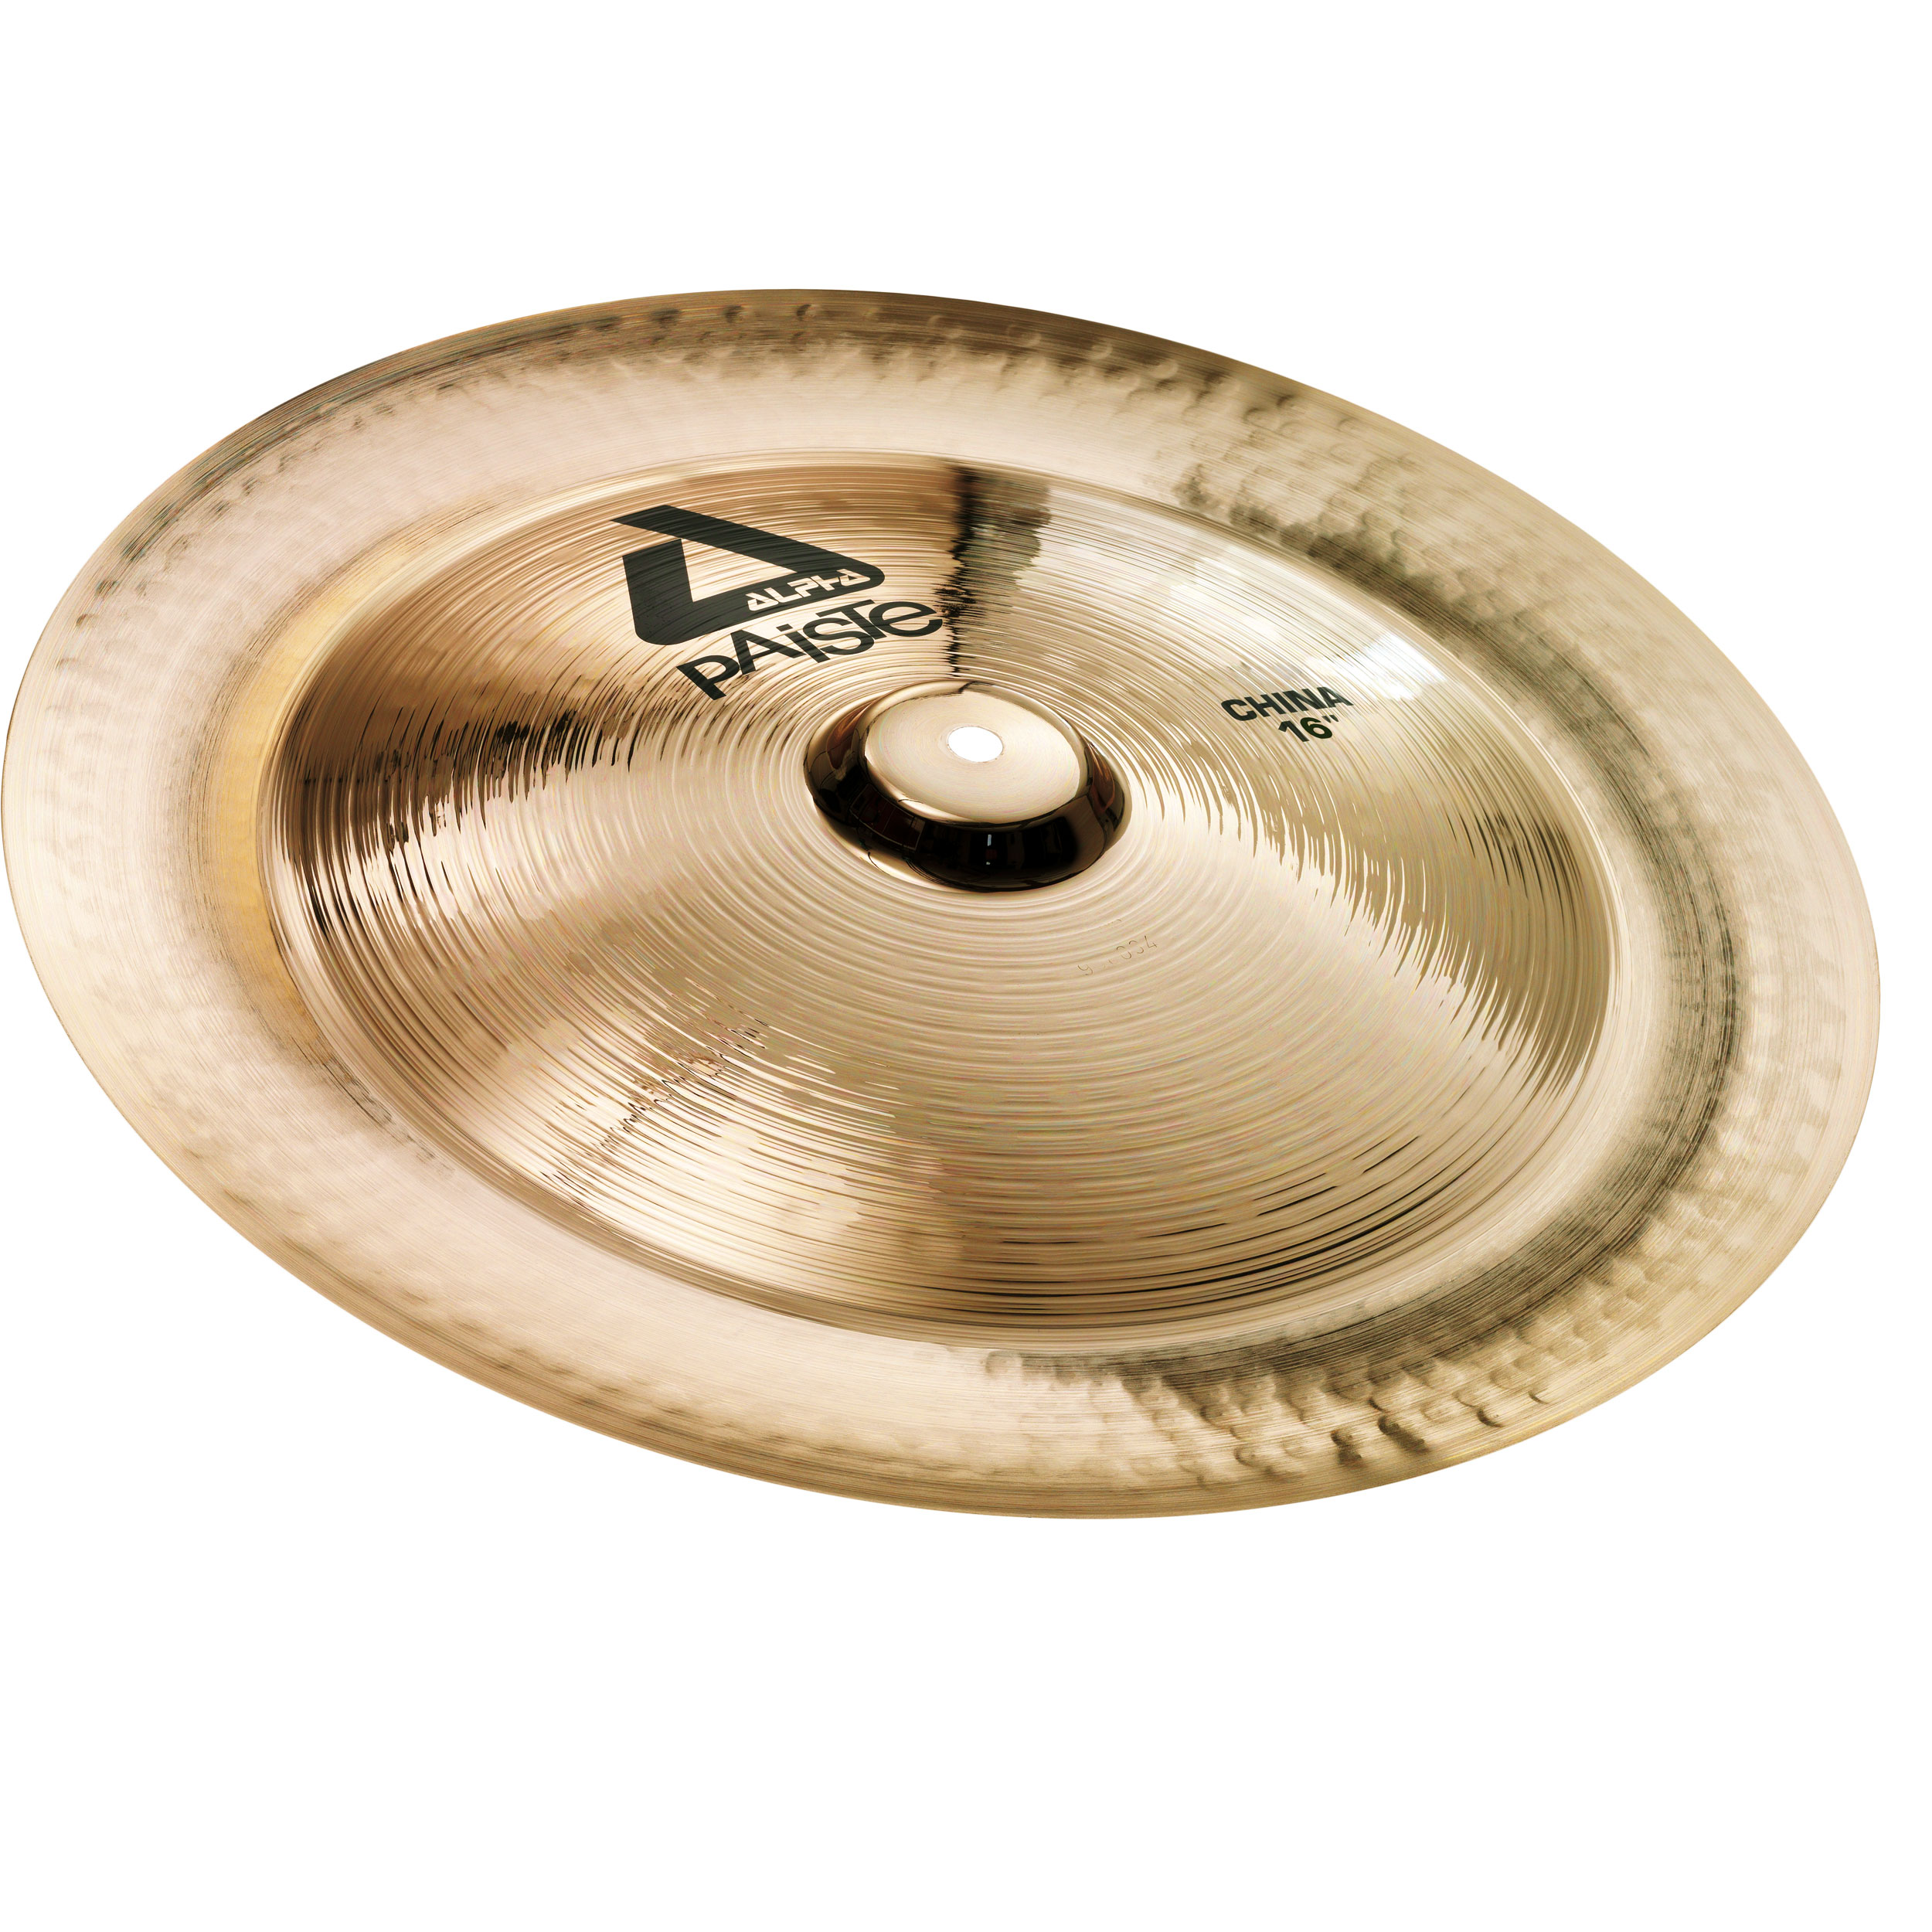 "Paiste 16"" Alpha China Cymbal with Brilliant Finish"